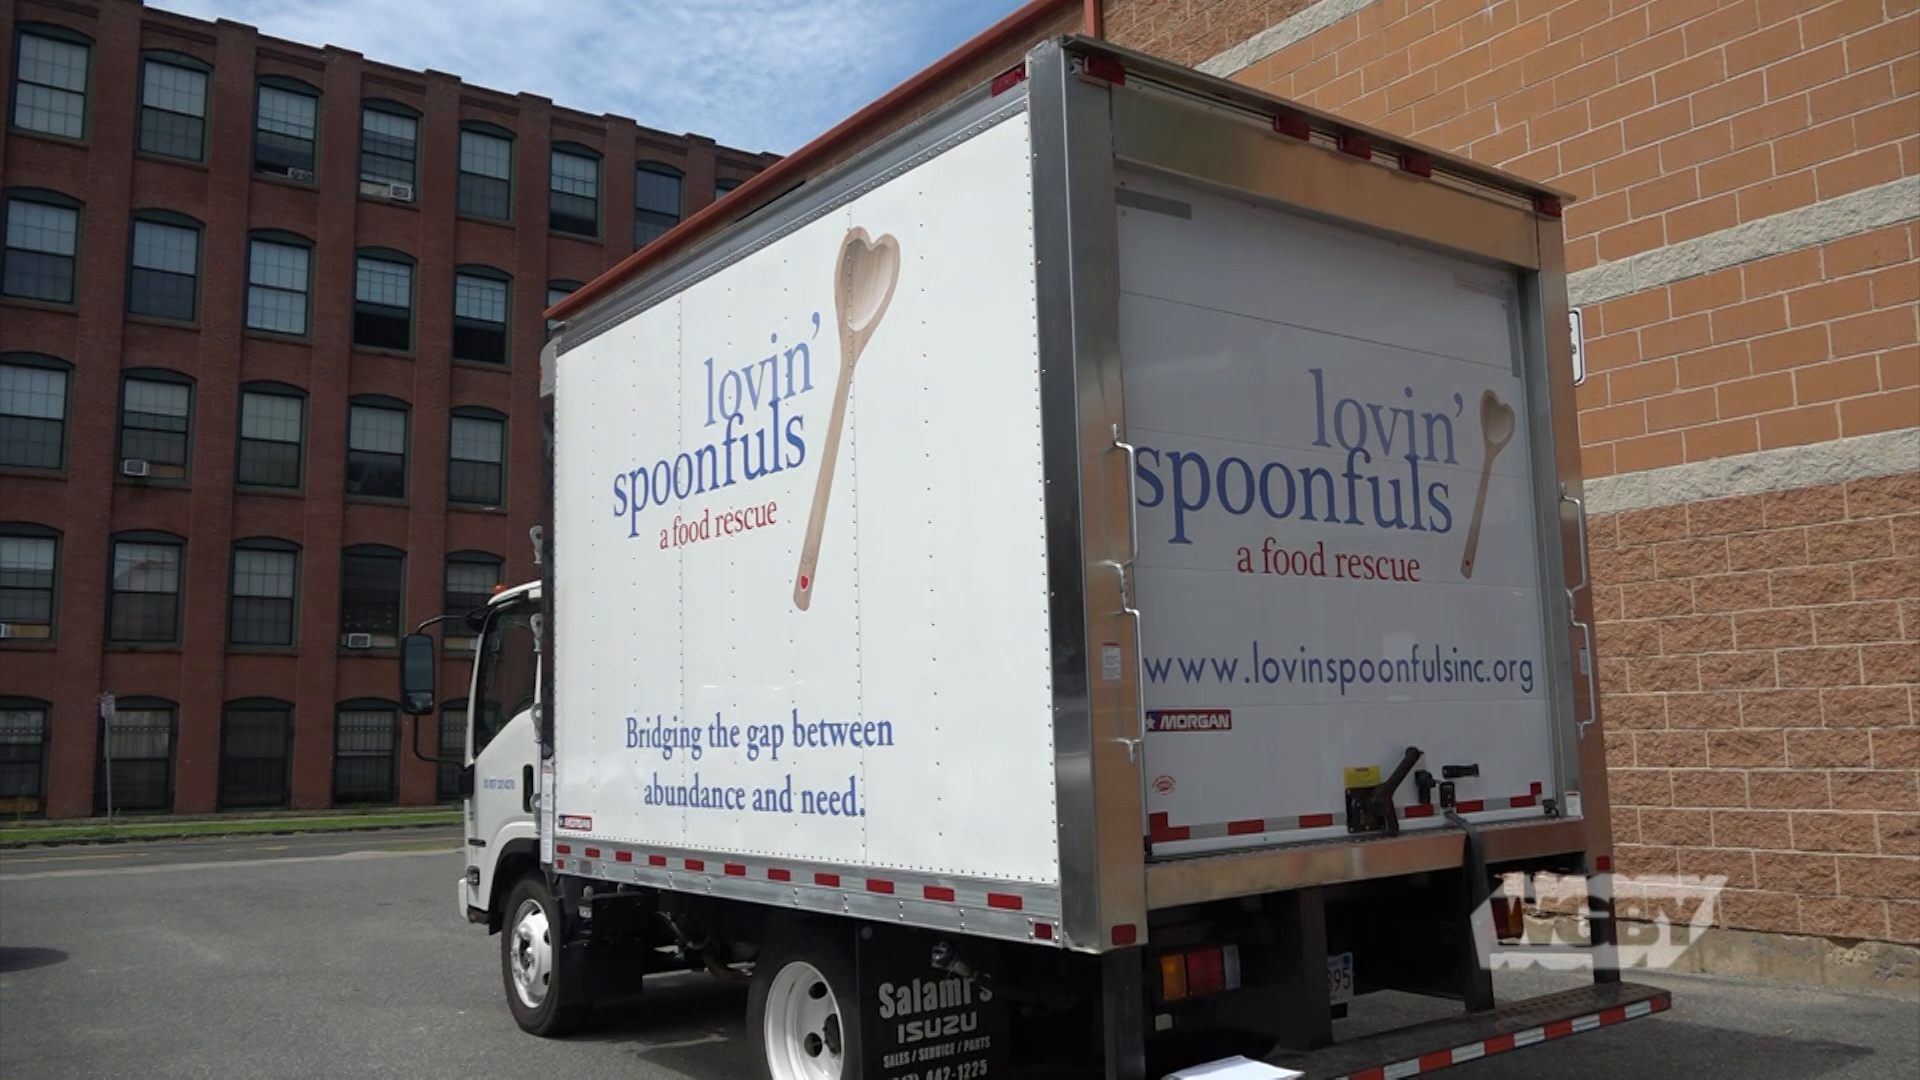 Lovin' Spoonfuls fights food insecurity by rescuing perishable, nutritious food from being discarded and distributing the food to western Mass shelters.